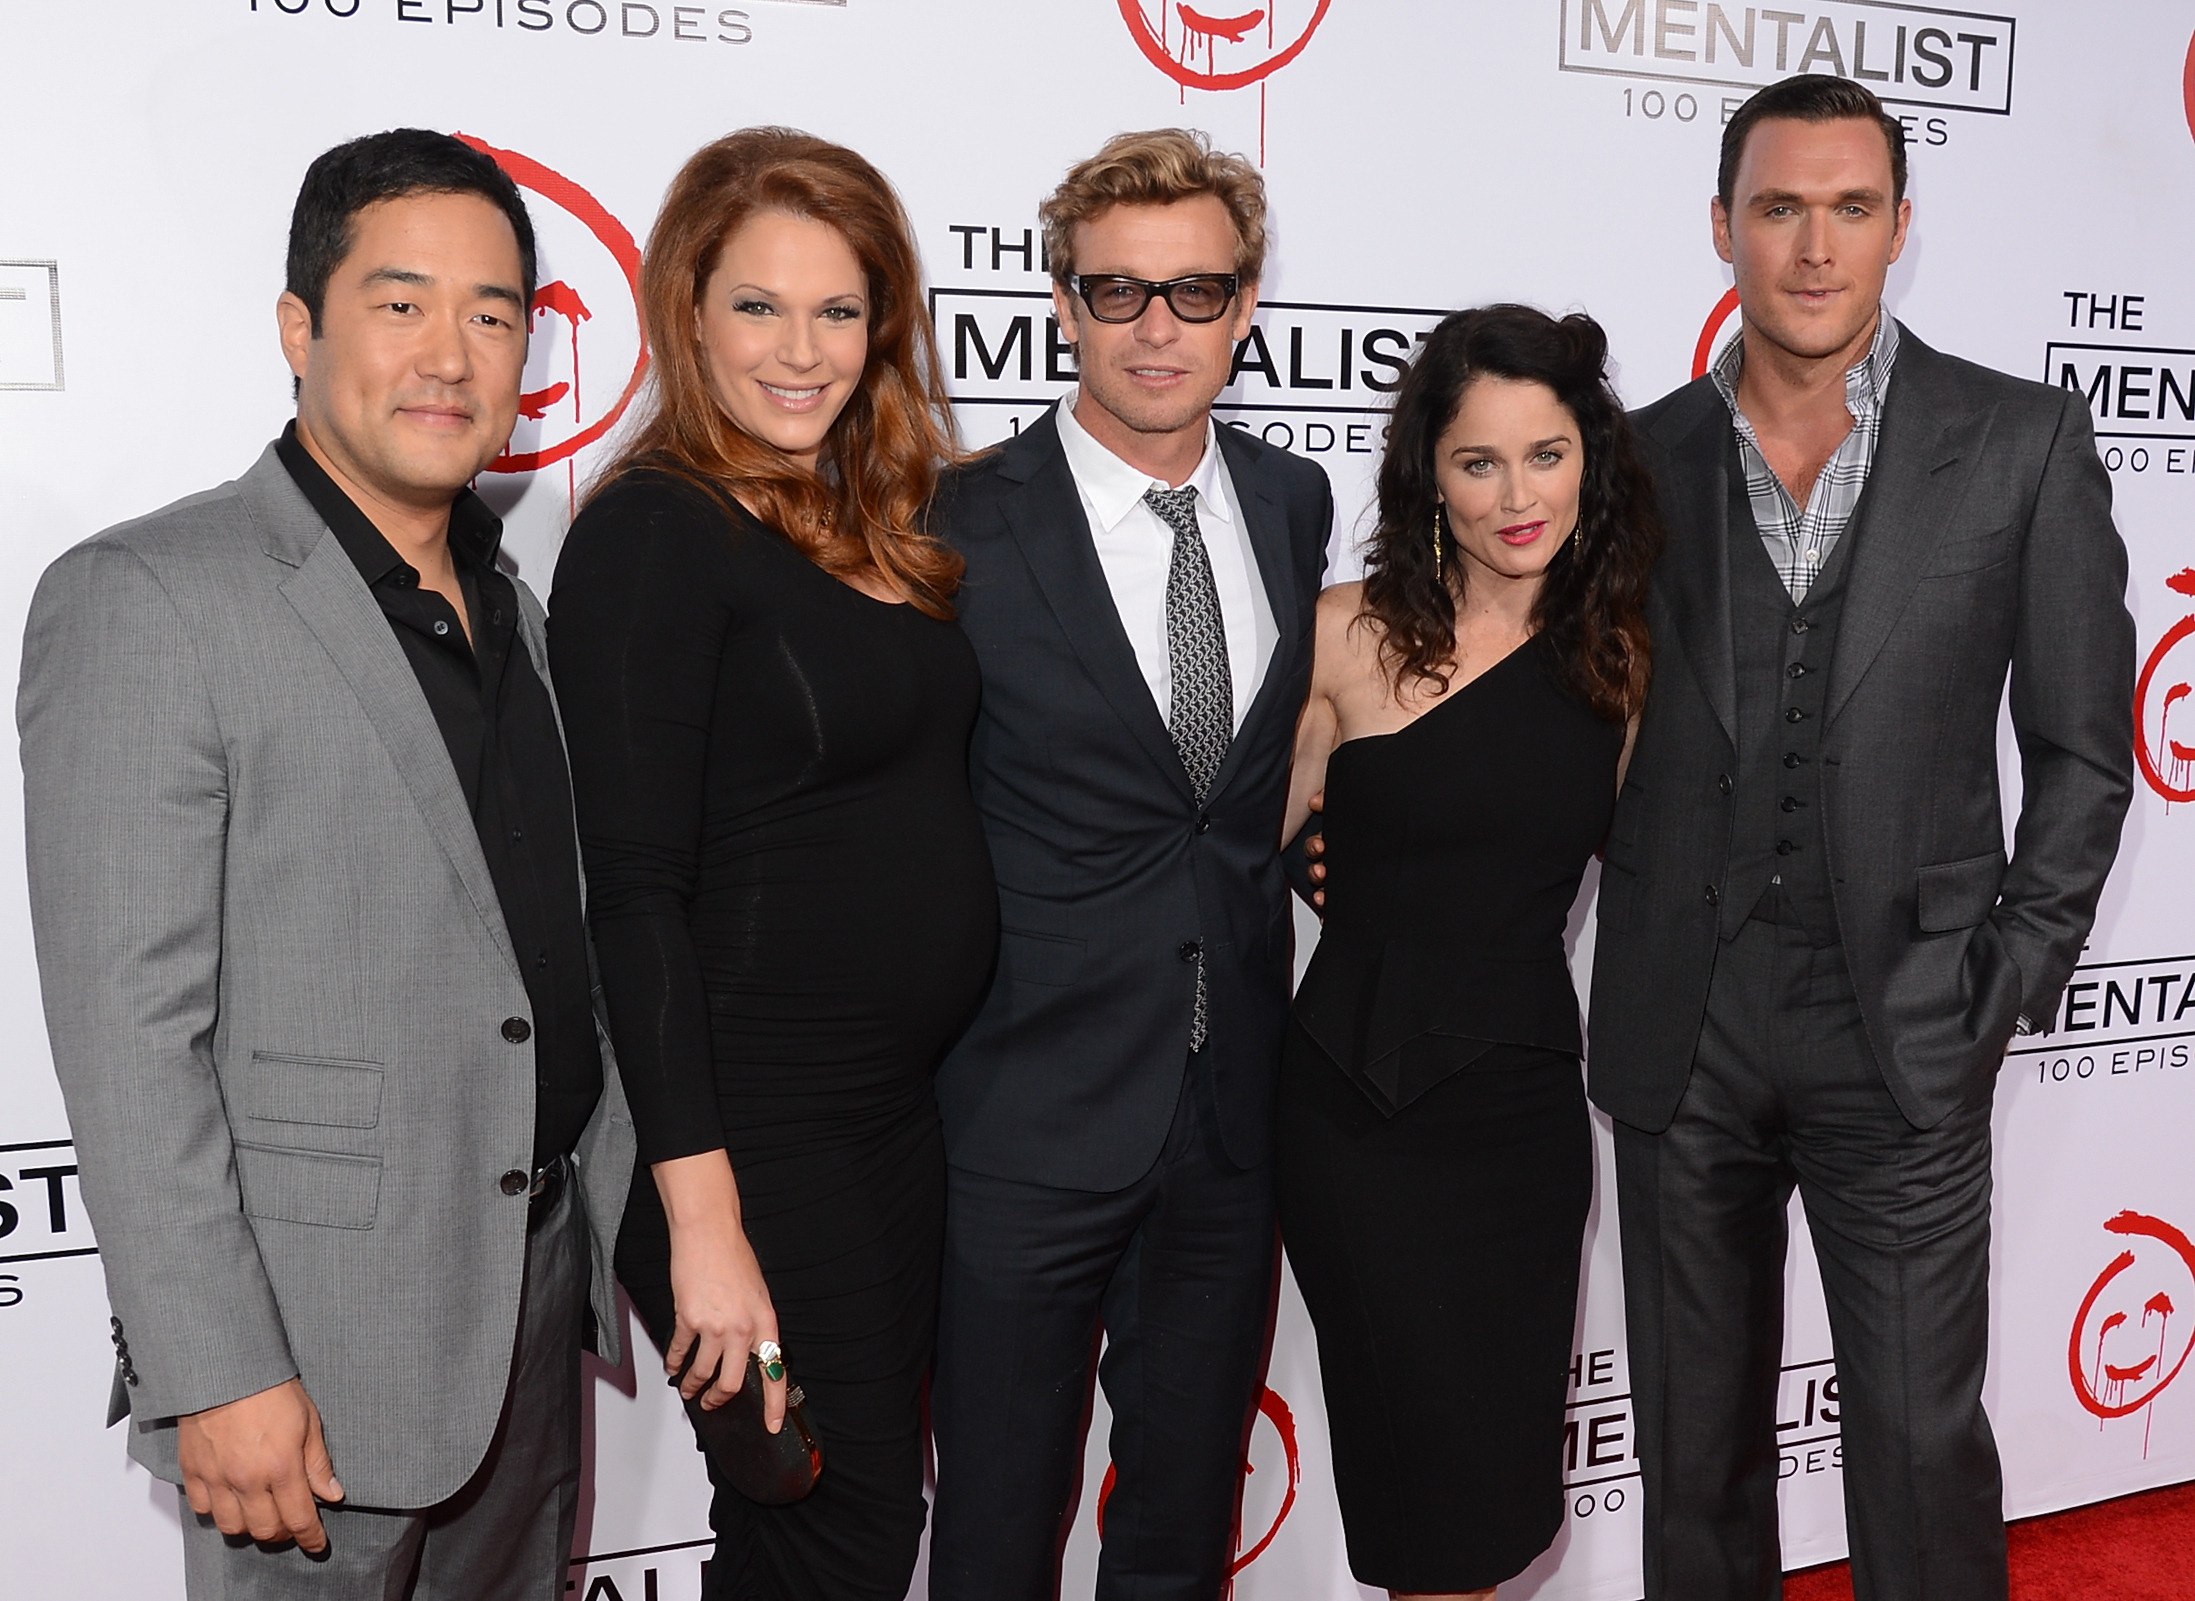 Actors Tim Kang, Amanda Righetti, Simon Baker, Robin Tunney, and Owain Yeoman attend the CBS 100 episode celebration of 'The Mentalist' held at The Edison on October 13, 2012, in Los Angeles, California. (Getty Images)